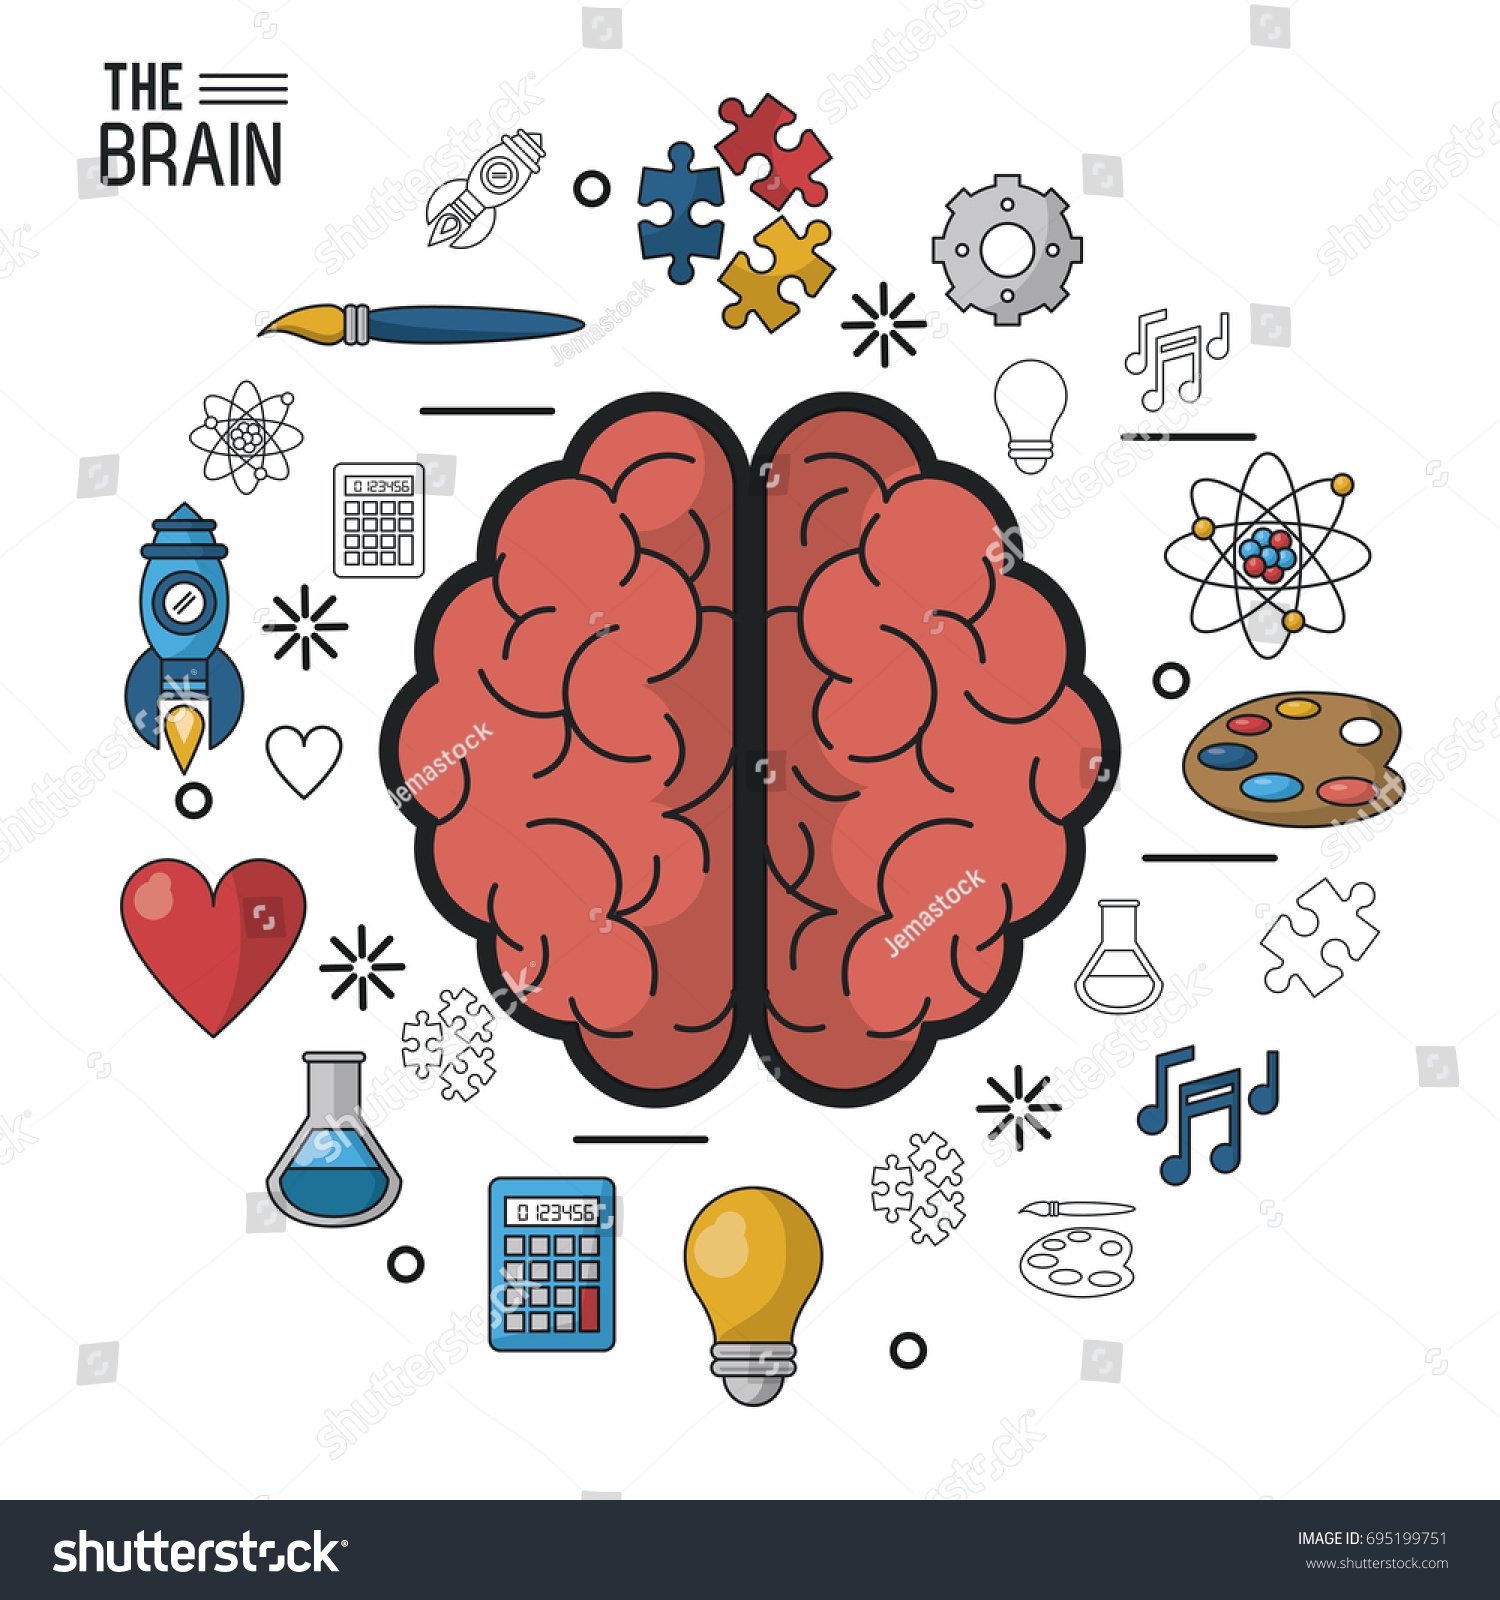 Colorful poster brain top view two stock vector 695199751 shutterstock colorful poster the brain in top view of its two hemispheres and icons around ccuart Choice Image